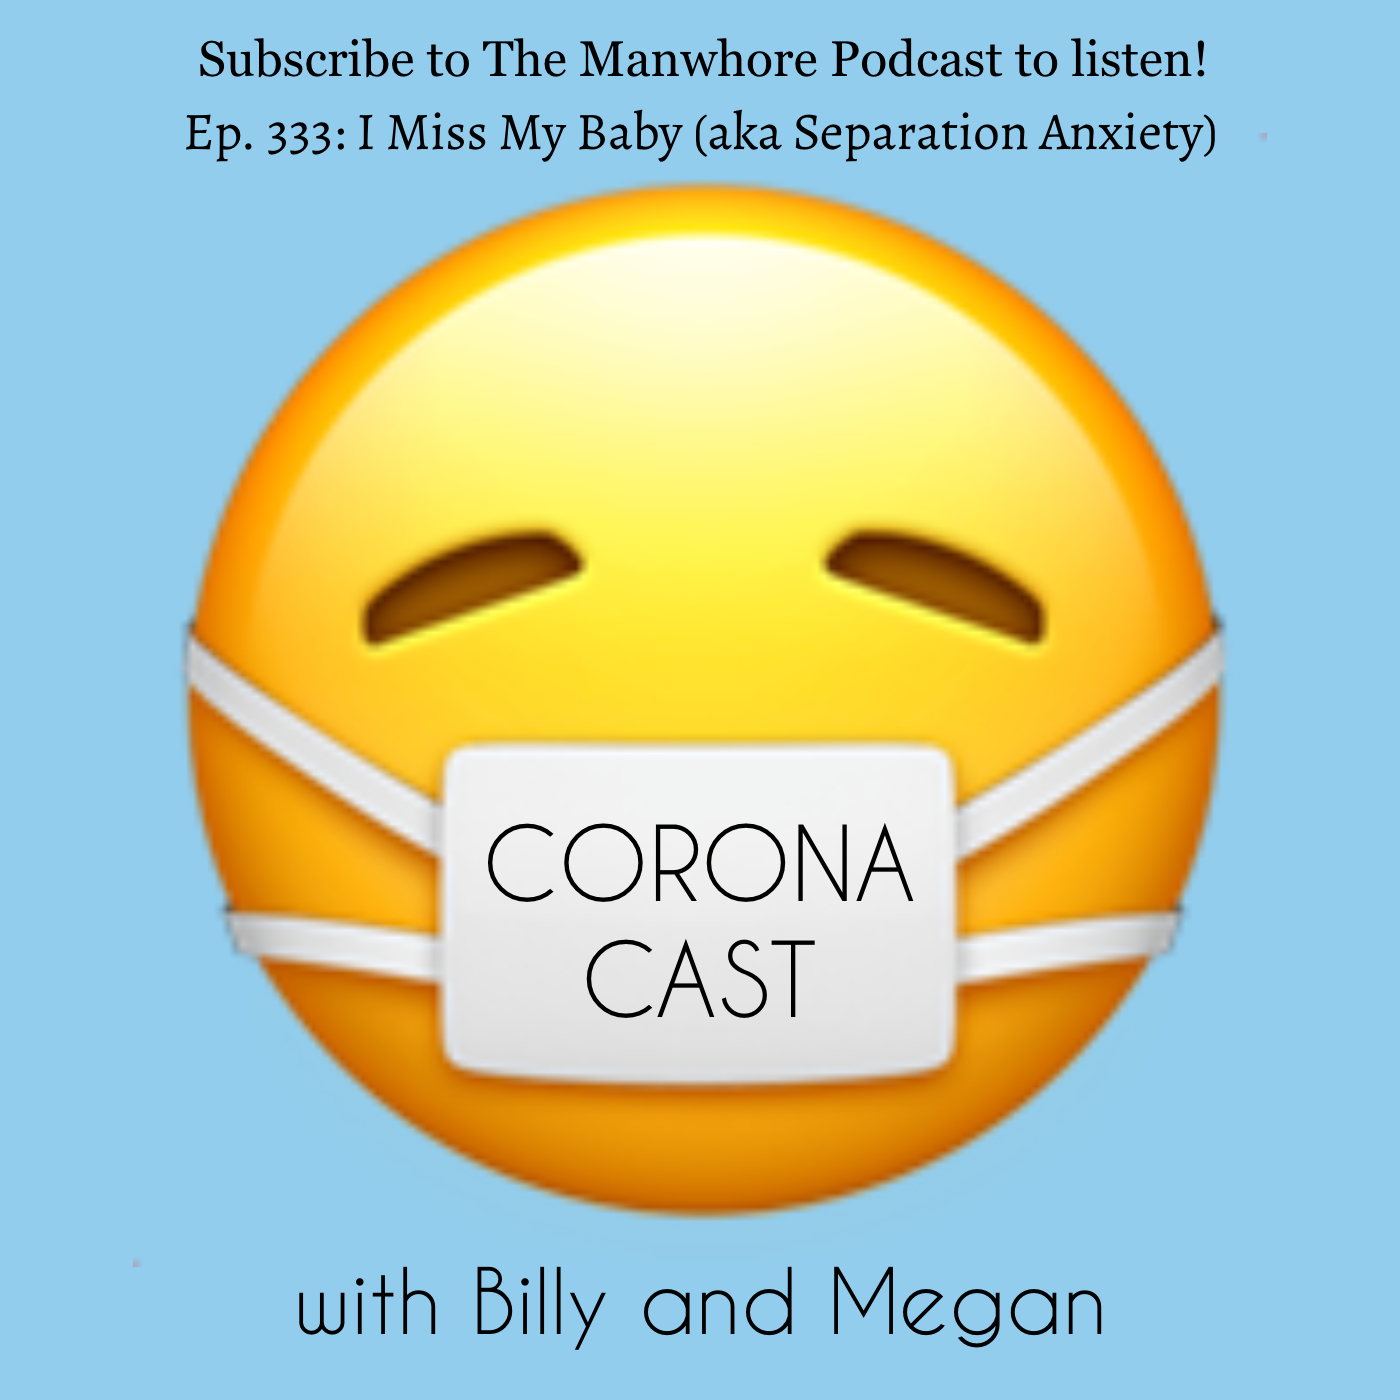 The Manwhore Podcast: A Sex-Positive Quest - Ep. 333: Corona Cast Part 12 - I Miss My Baby (aka Separation Anxiety)